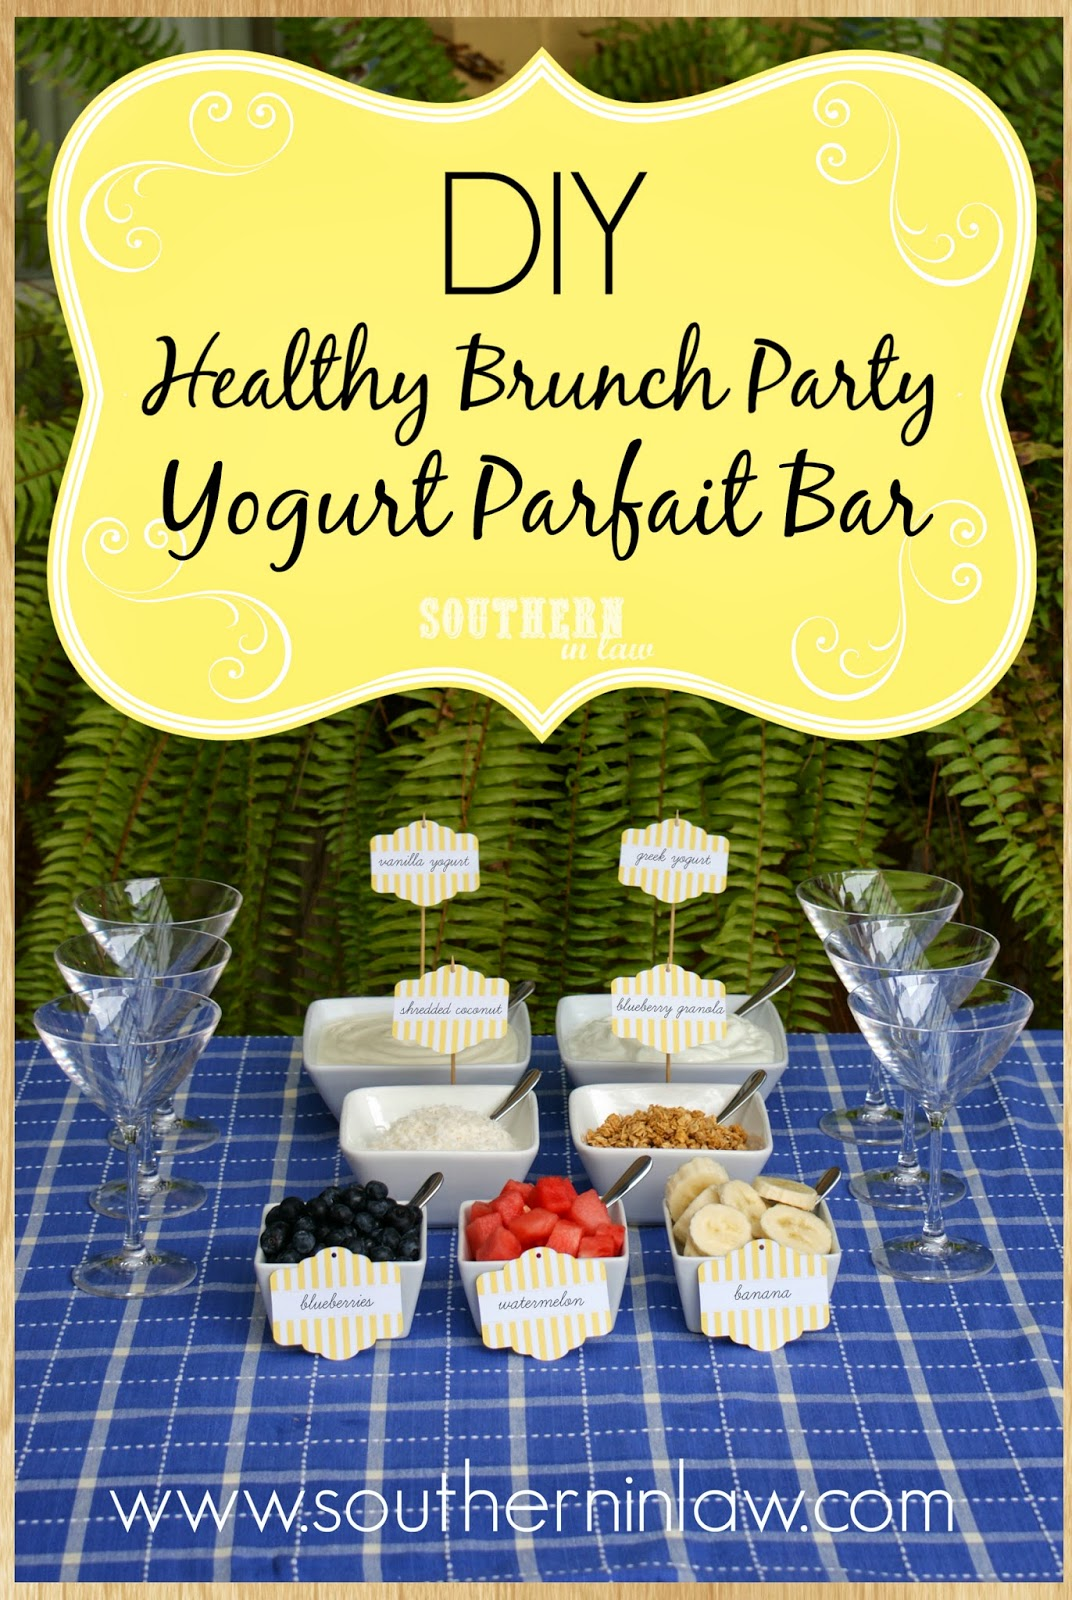 How to host your own healthy brunch party - DIY Yogurt Parfait Bar